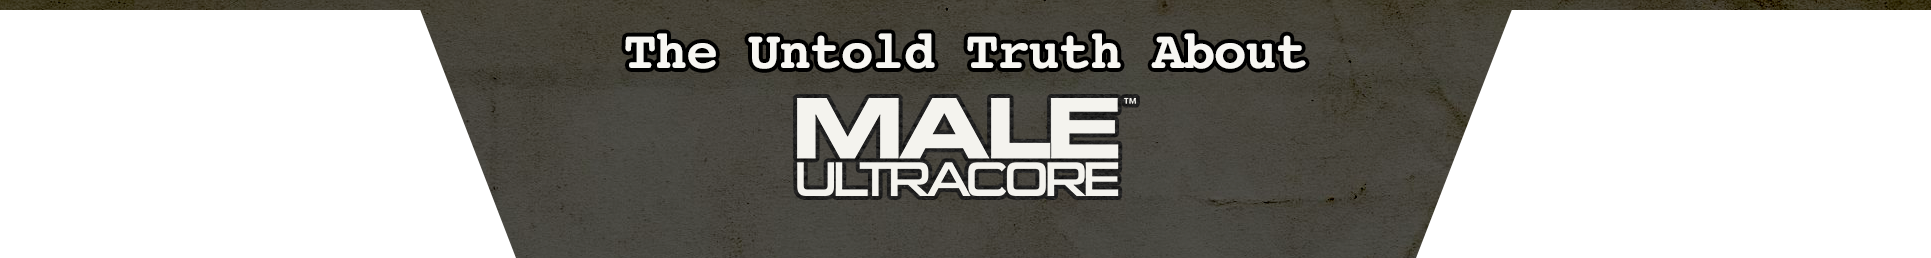 The Untold Truth About Male UltraCore, Does It Really Work